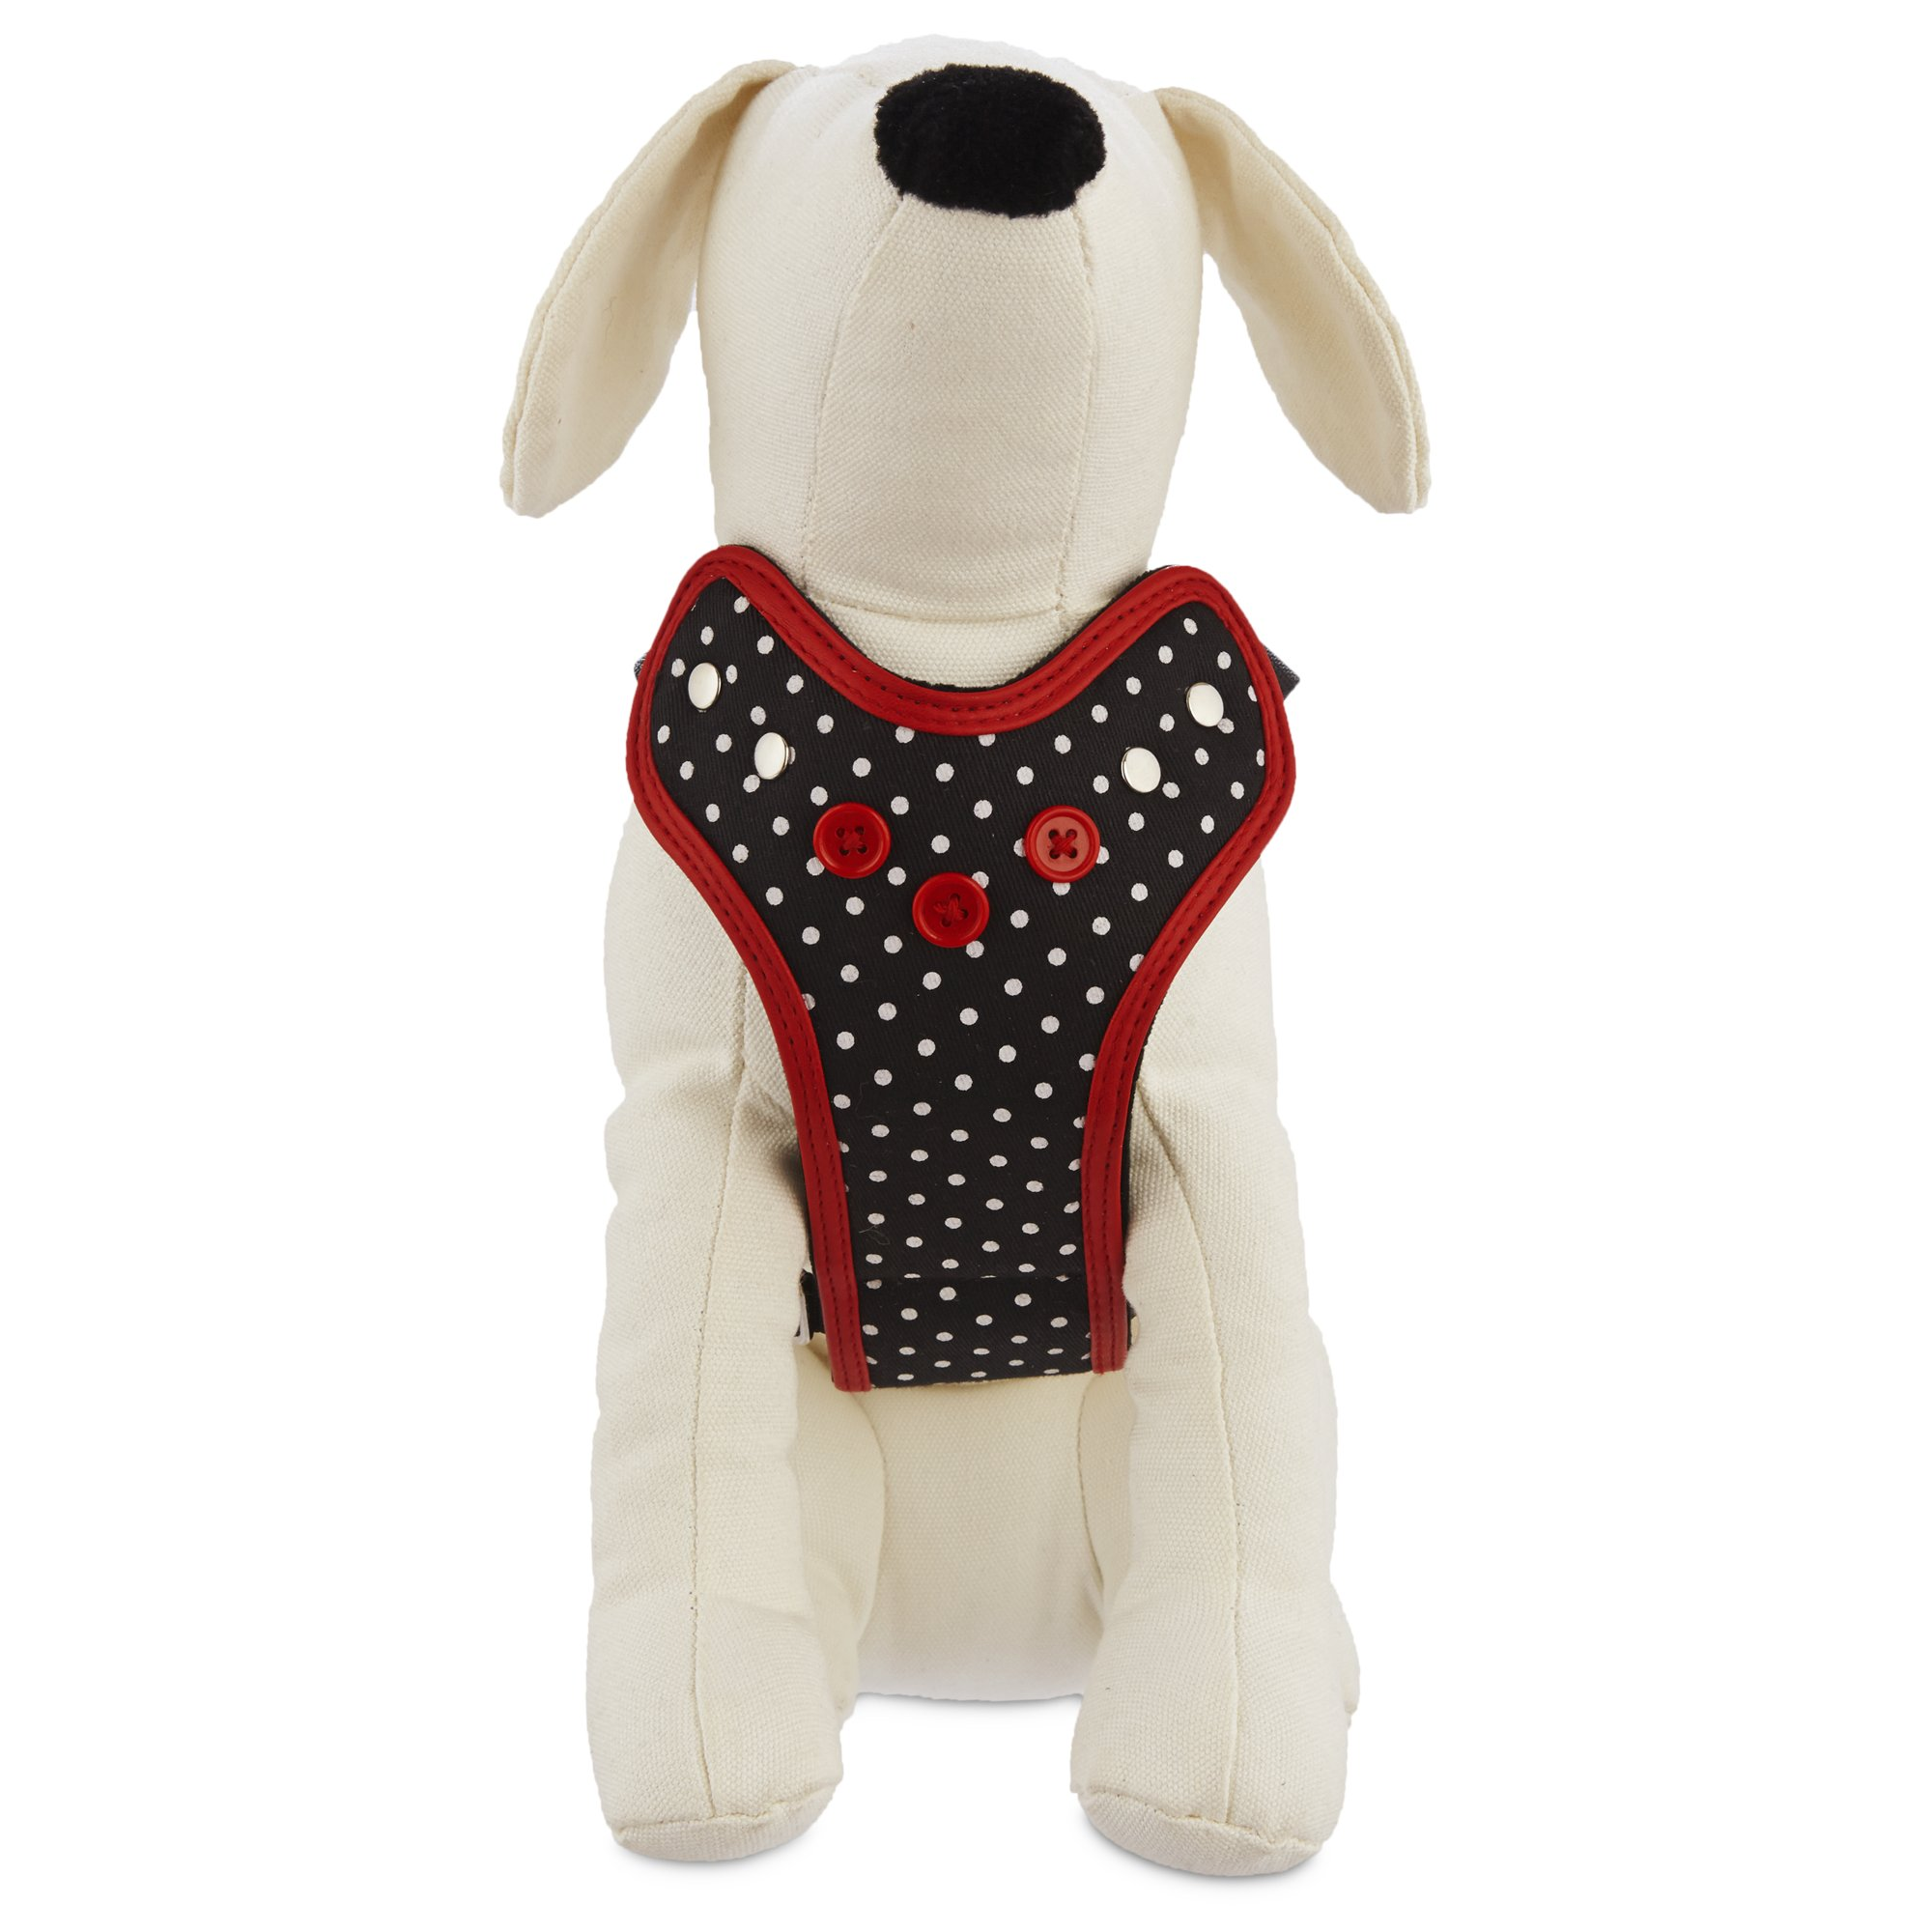 petco dog harness petco dog ropes elsavadorla. Black Bedroom Furniture Sets. Home Design Ideas